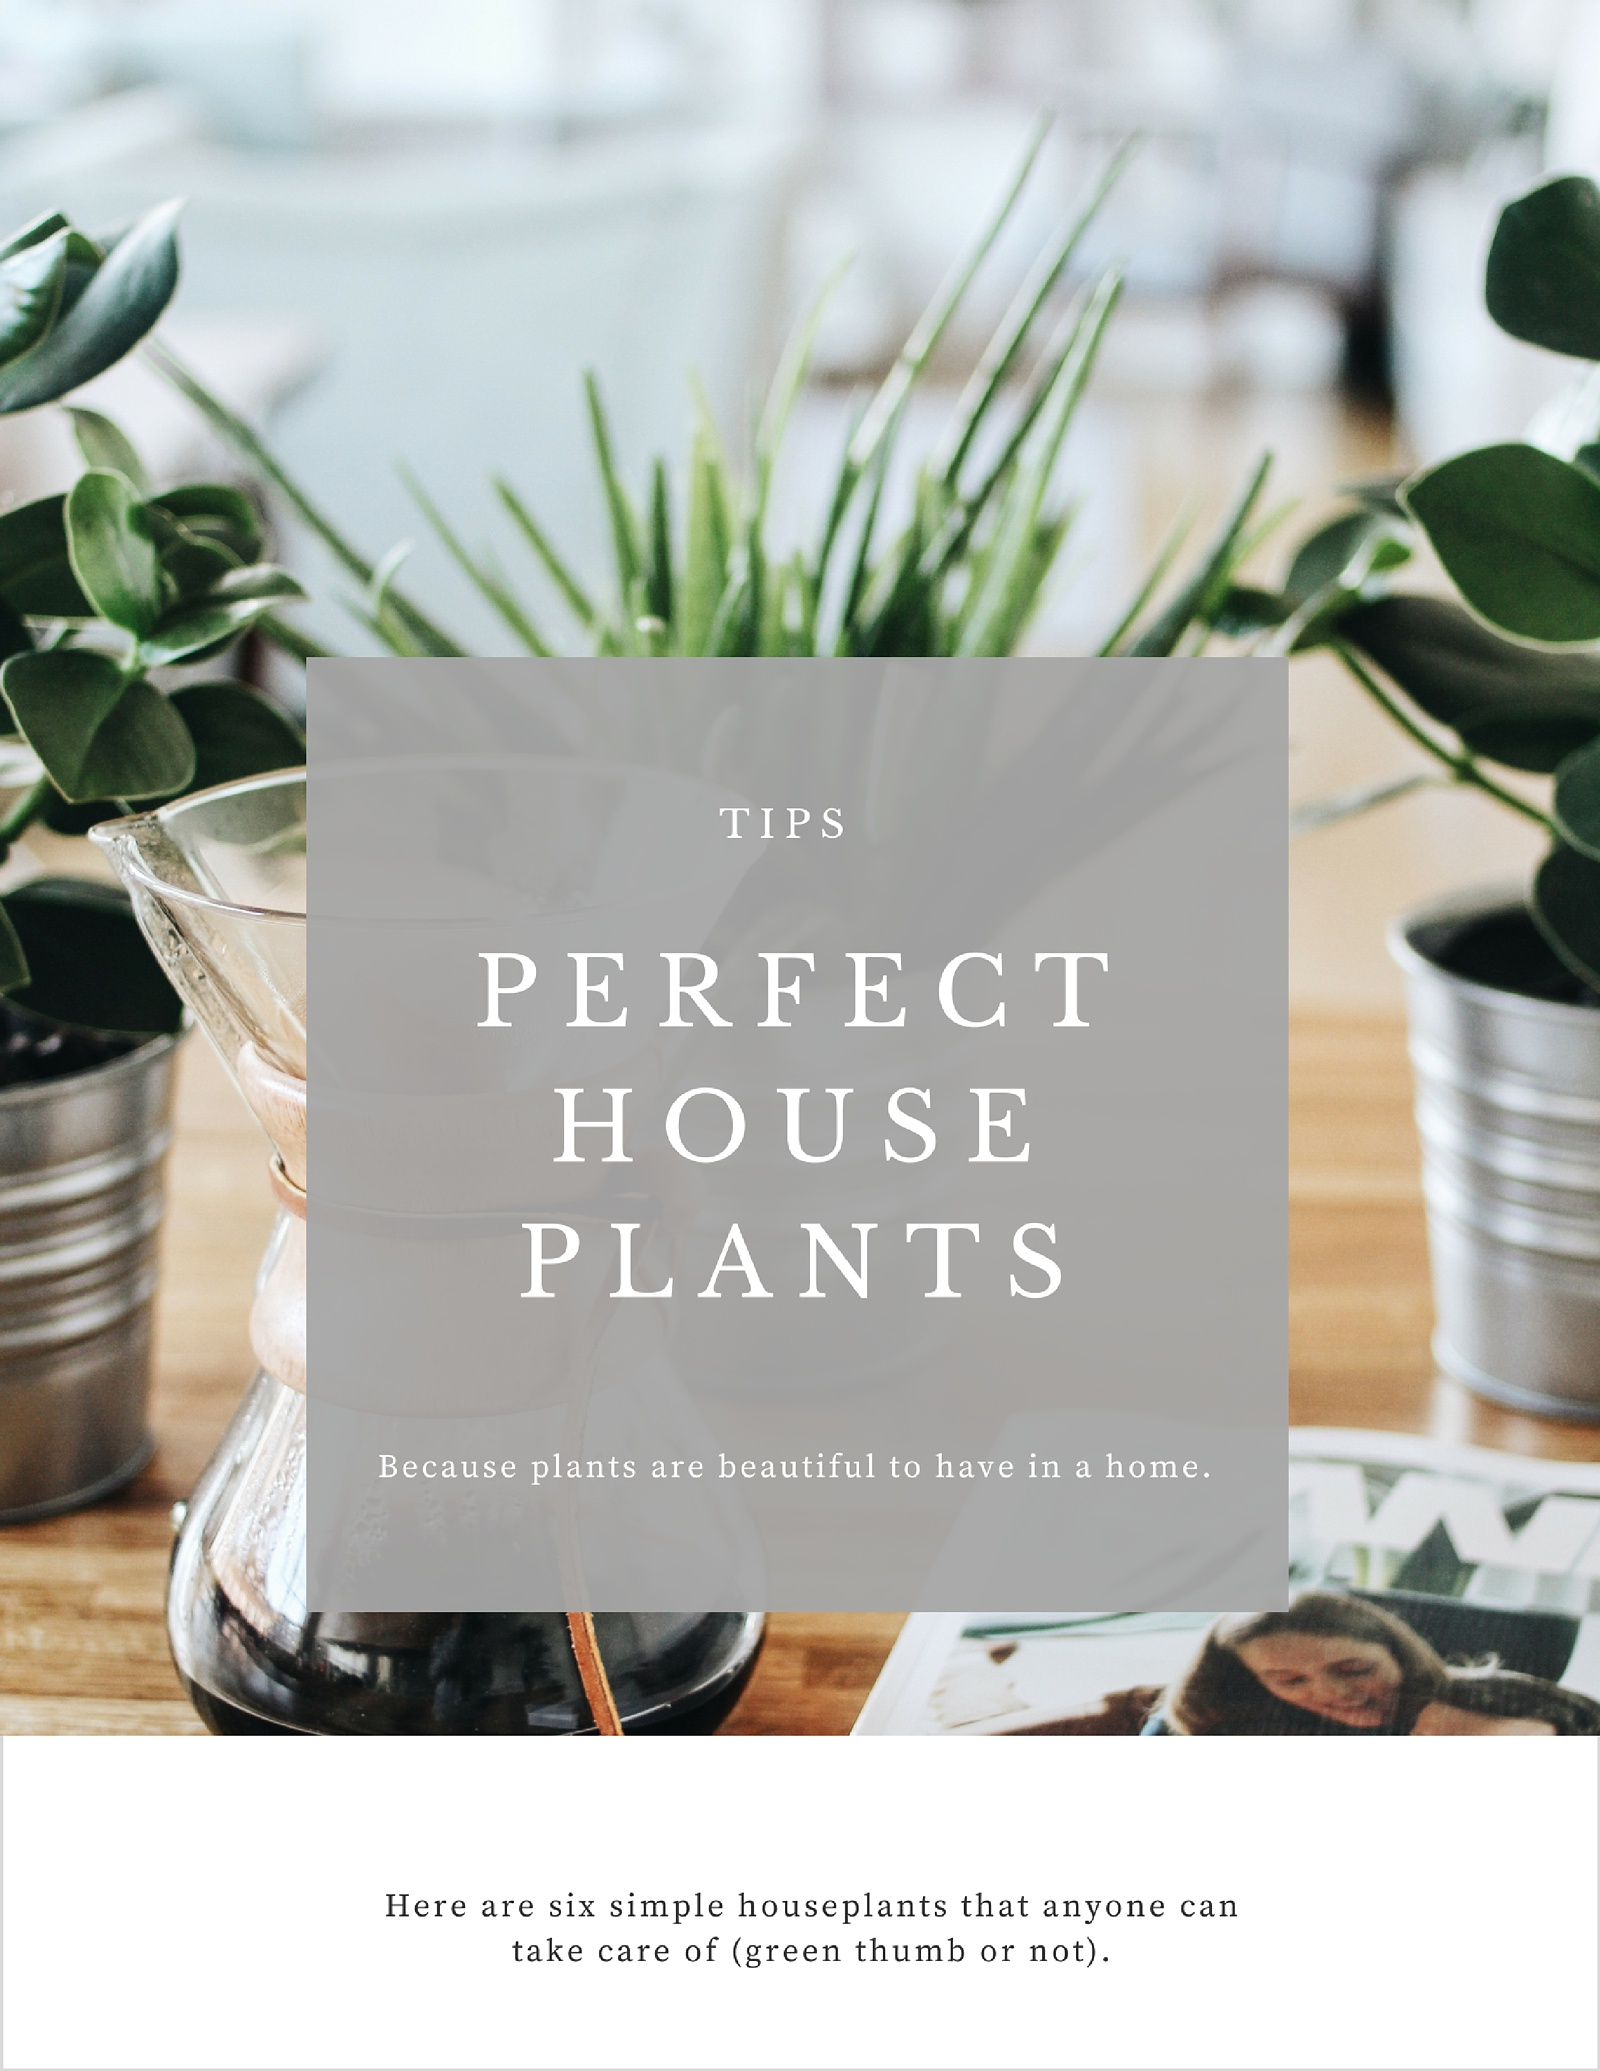 6 Simple Houseplants for Any Green Thumb